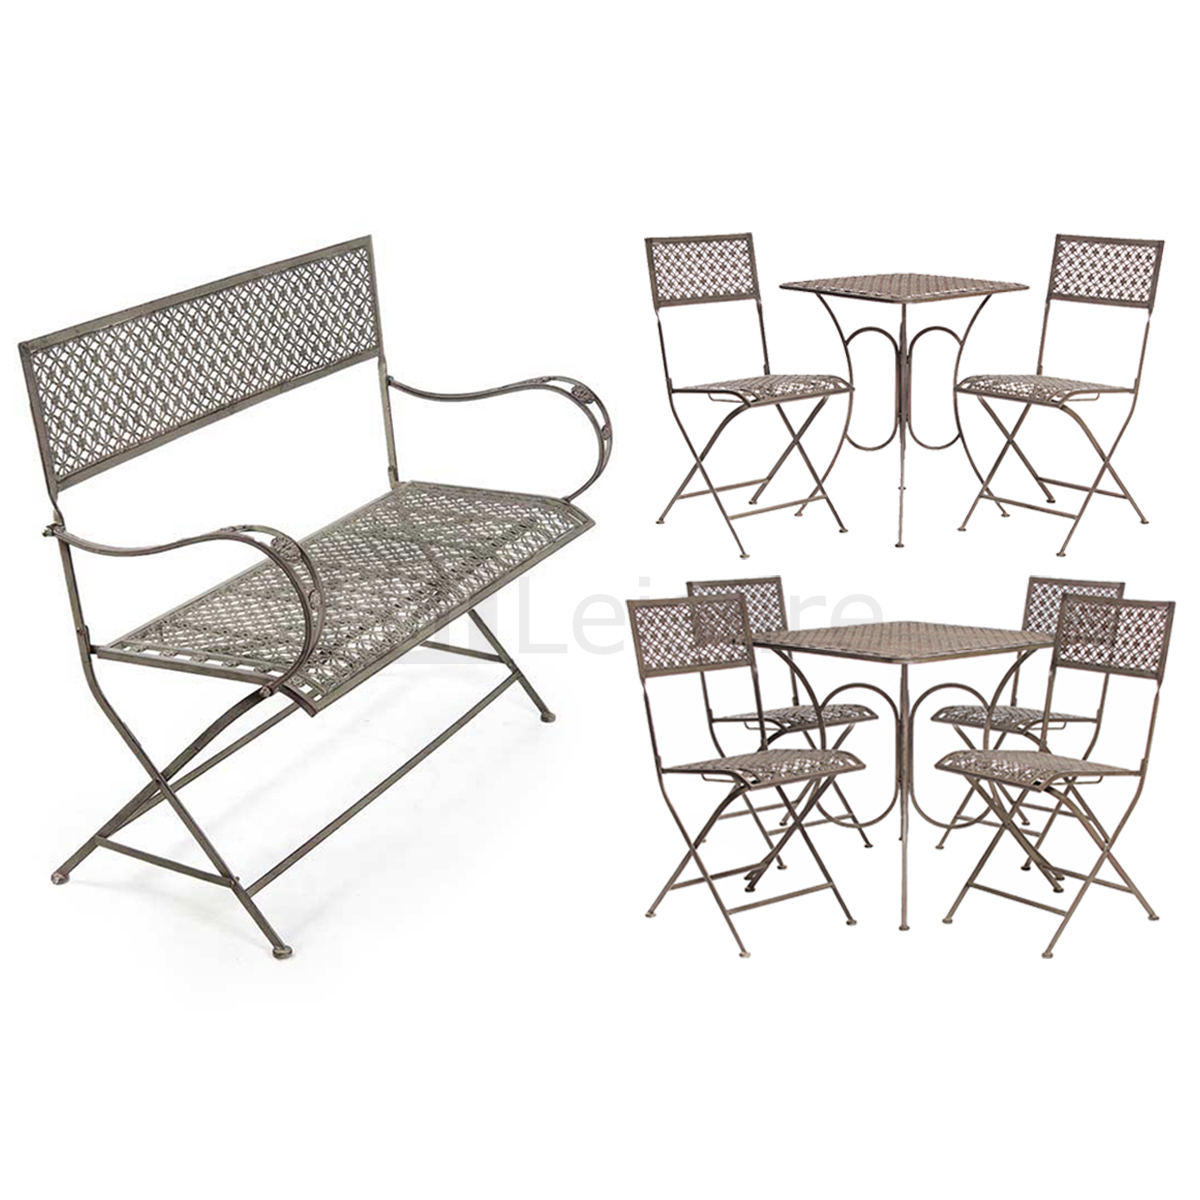 Vintage steel bistro furniture set garden table and chairs for Table and bench set